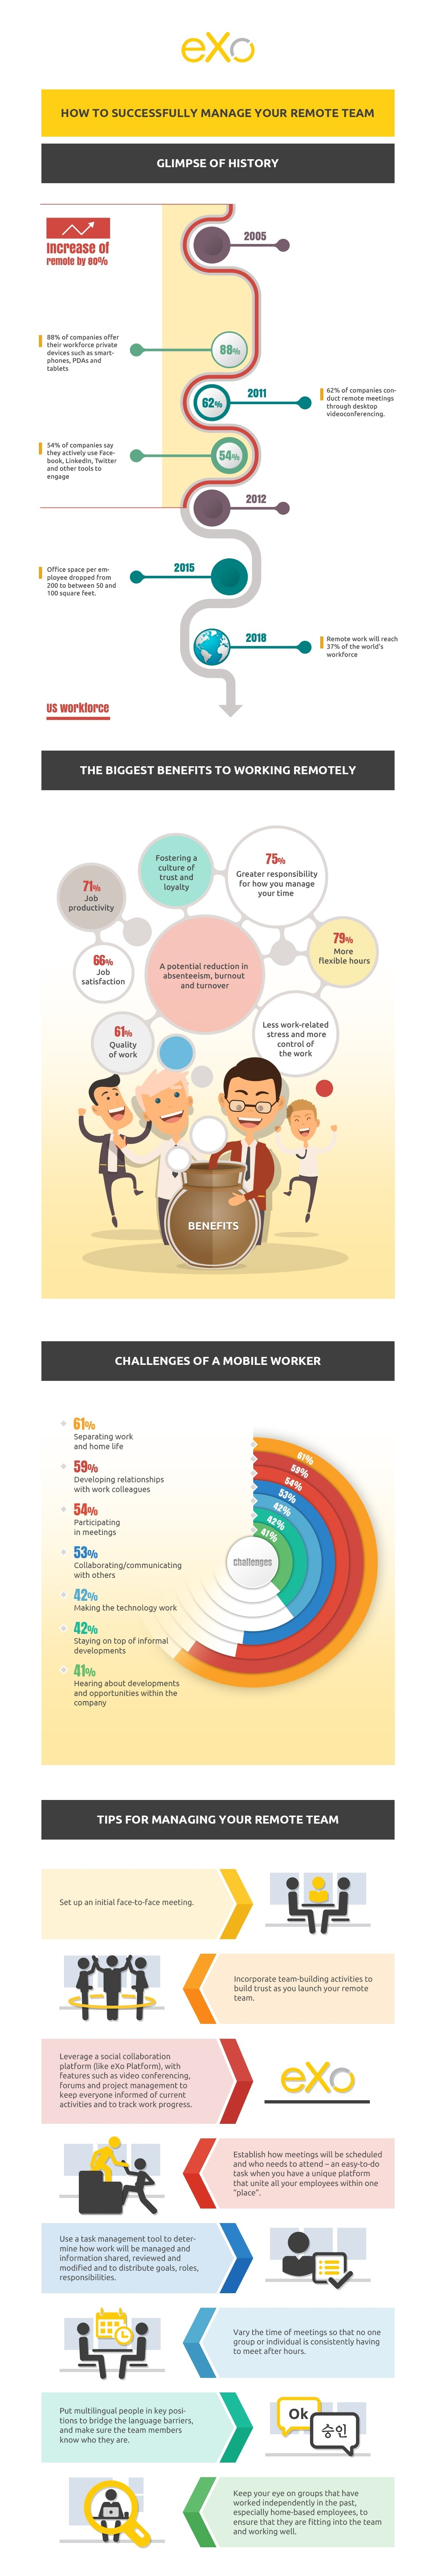 How to enhance employee engagement in the workplace (Infographic)